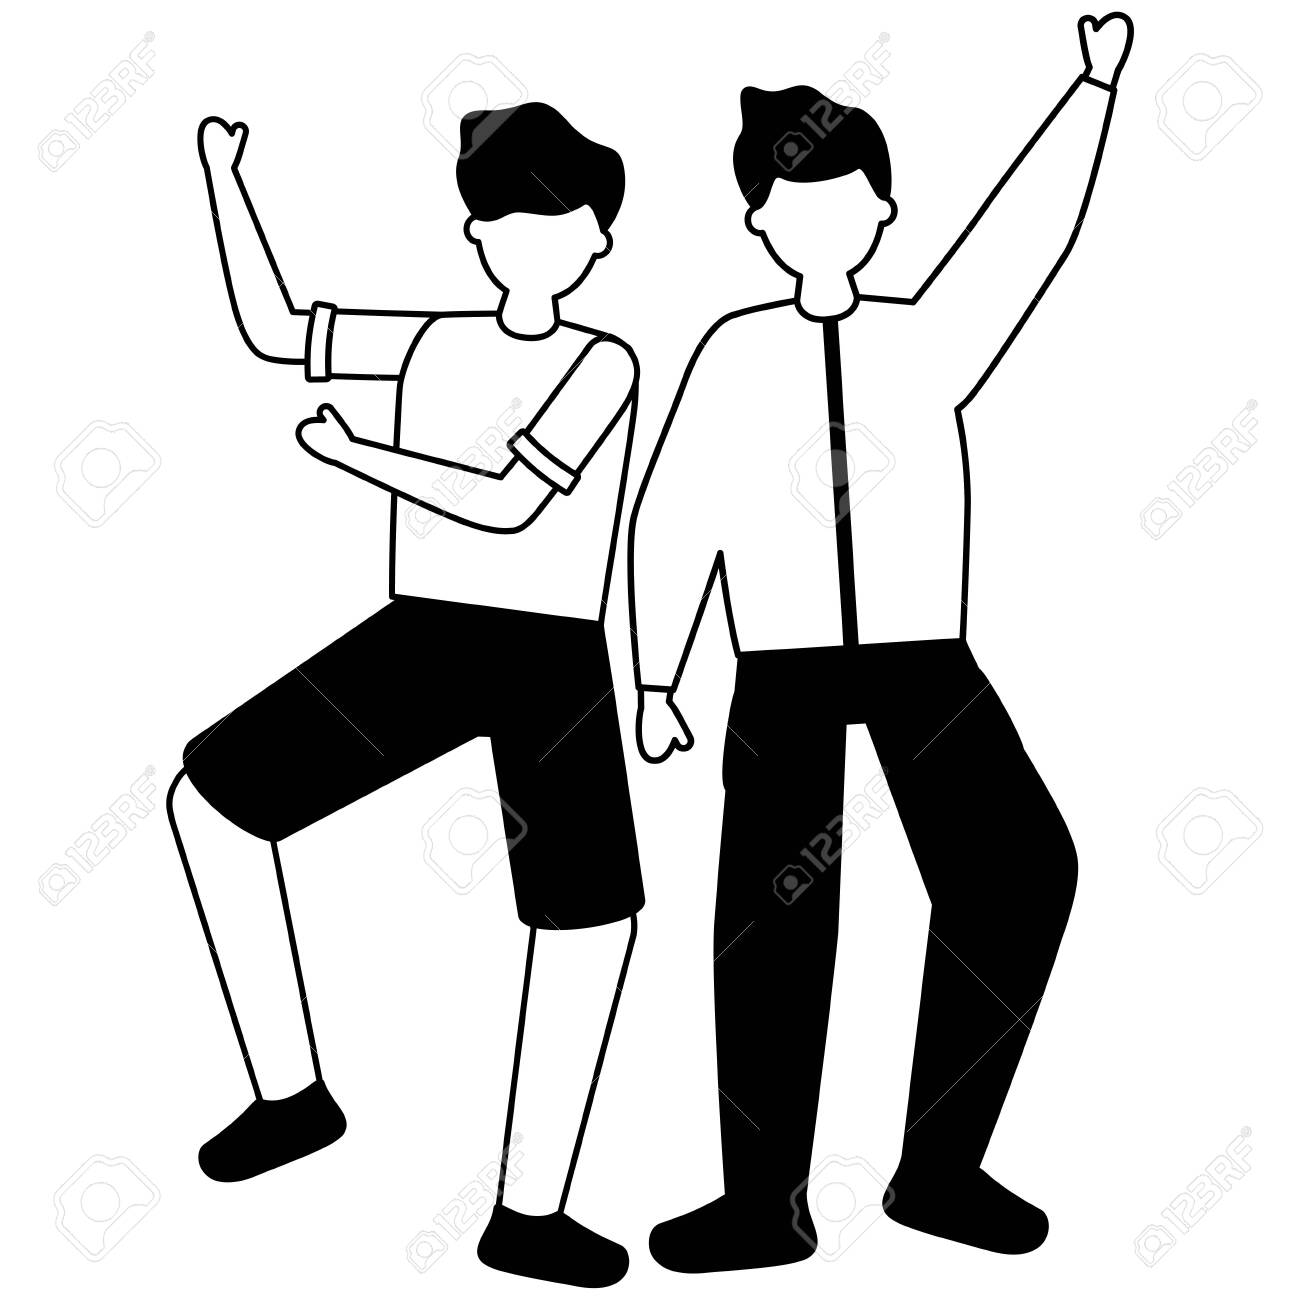 celebrating men hands up characters vector illustration white and black - 129979400